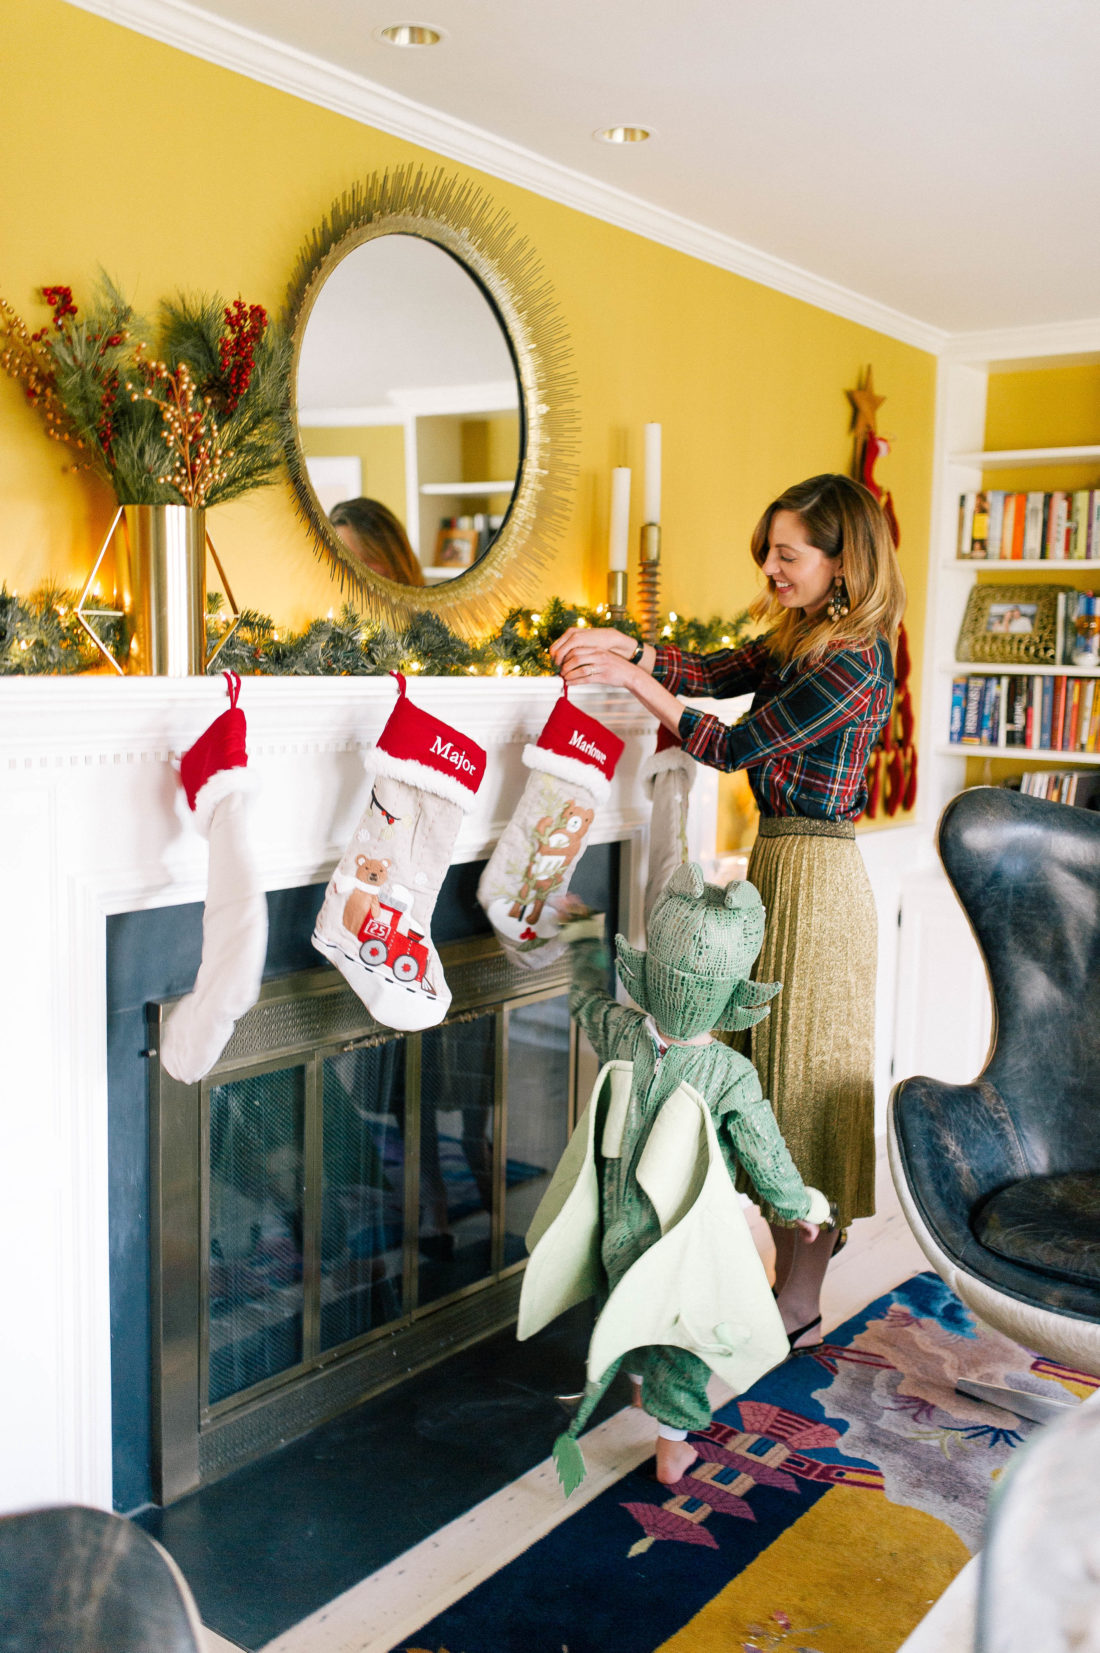 Eva Amurri Martino and three year old daughter Marlowe hang Christmas stocking on the mantel in their Connecticut home